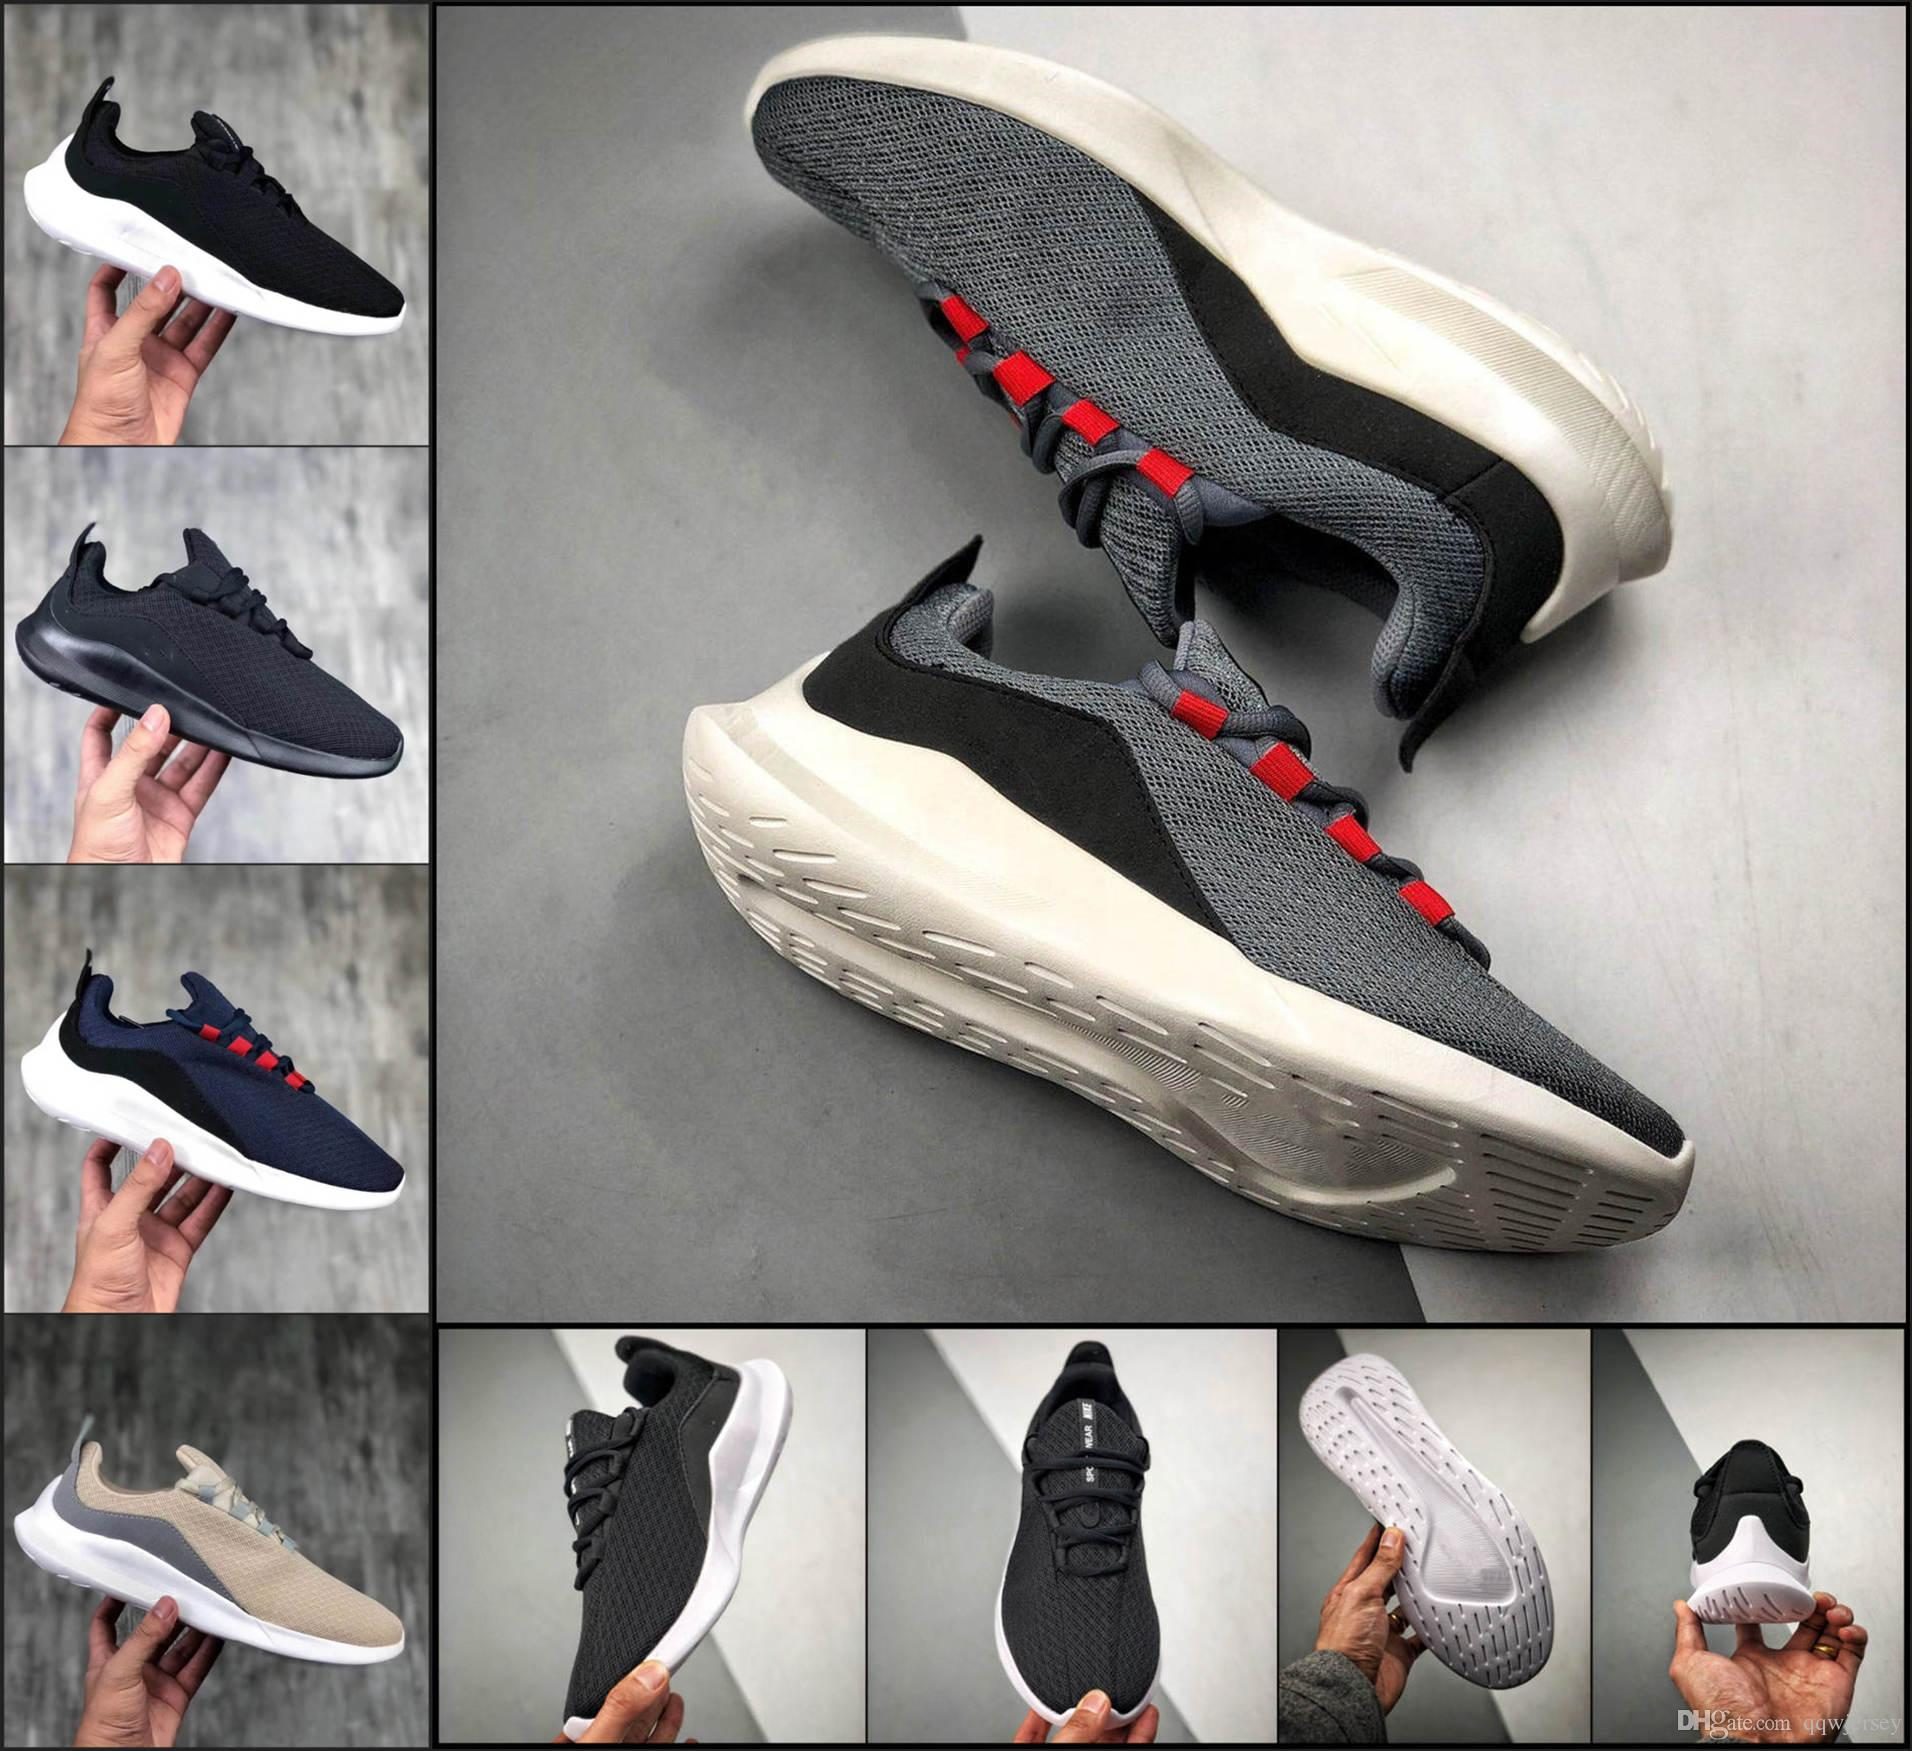 Mens Designer Ourdoors Walking Shoes Run Londons 2019 Women Soft Comfortable Black White Mesh Shoes Best Sports Sneakers Sportswear TM33181